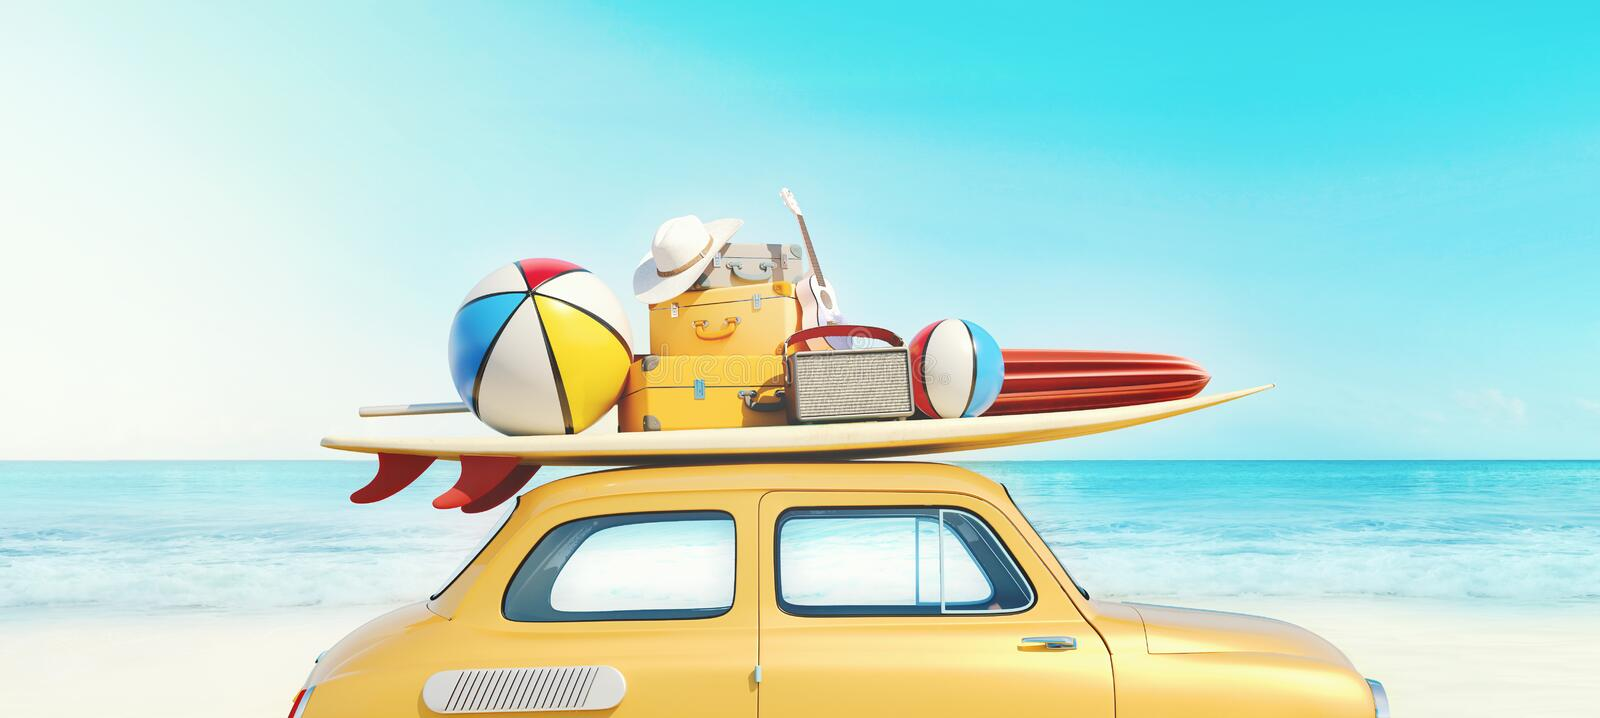 Small retro car with baggage, luggage and beach equipment on the roof, fully packed, ready for summer vacation stock photos